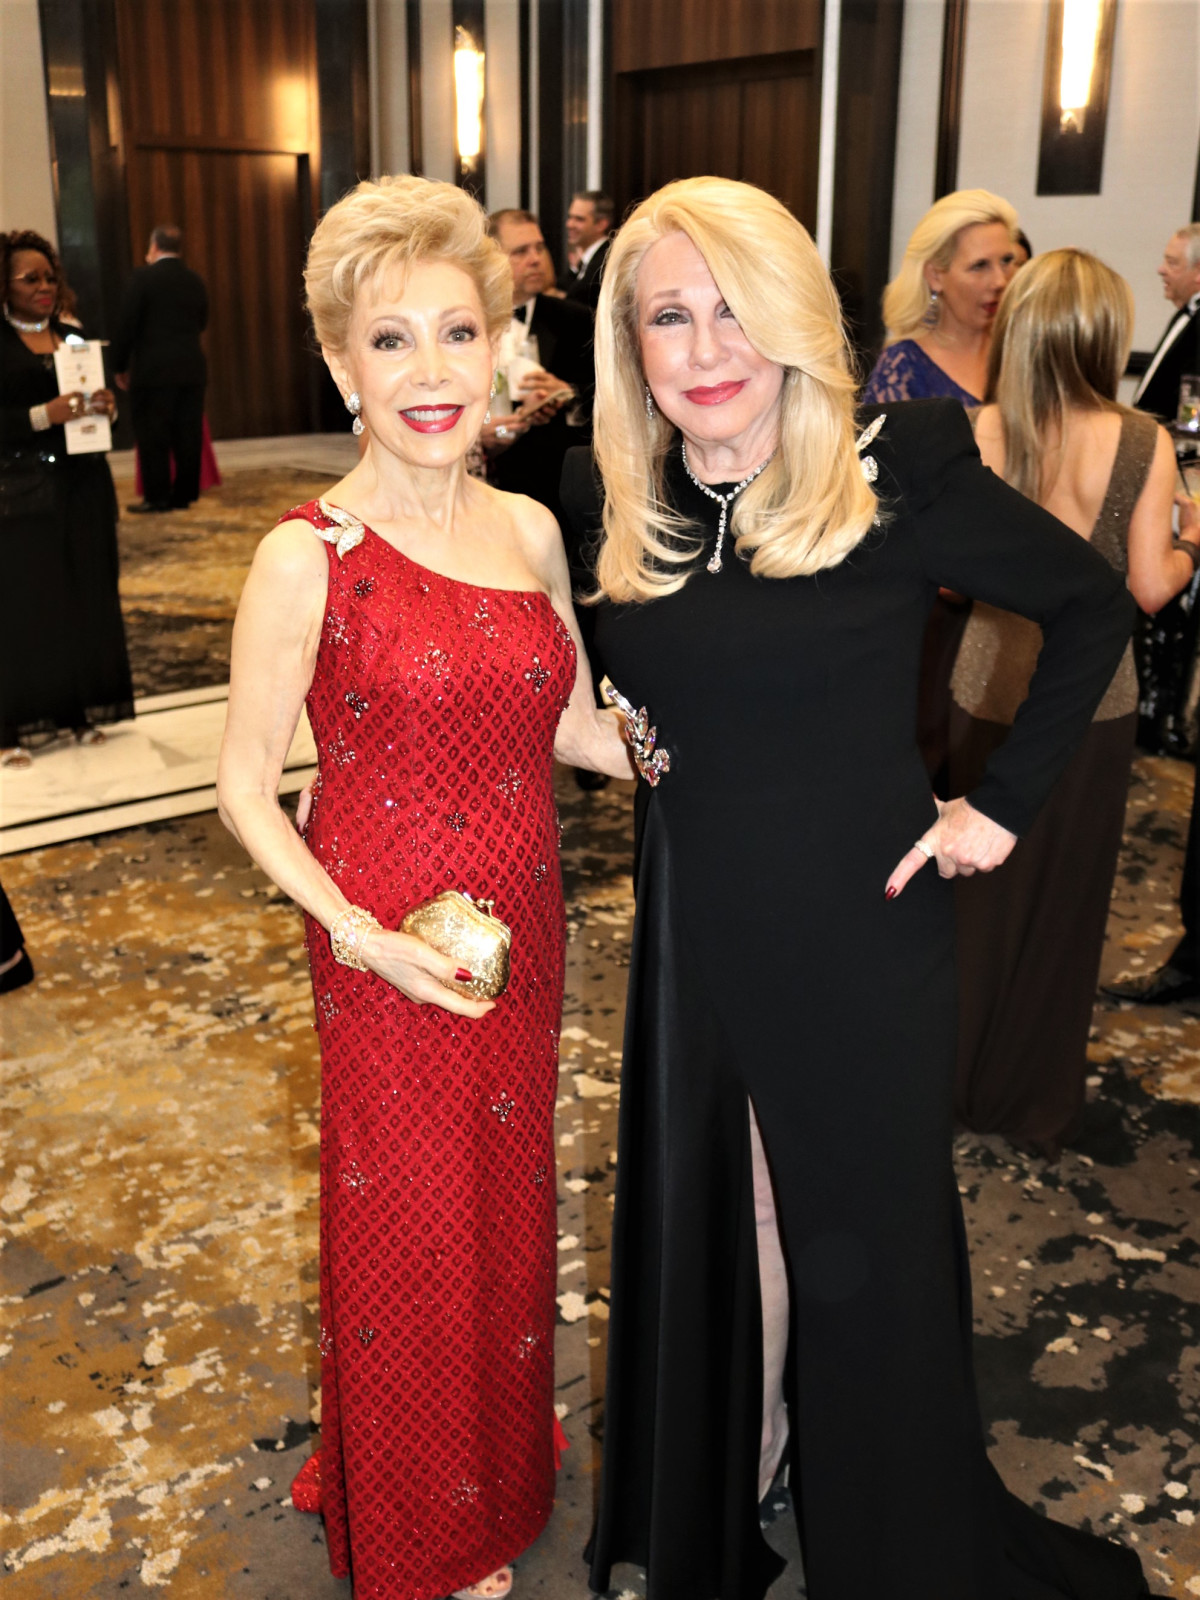 Margaret Alkek Williams and Sherri Zucker